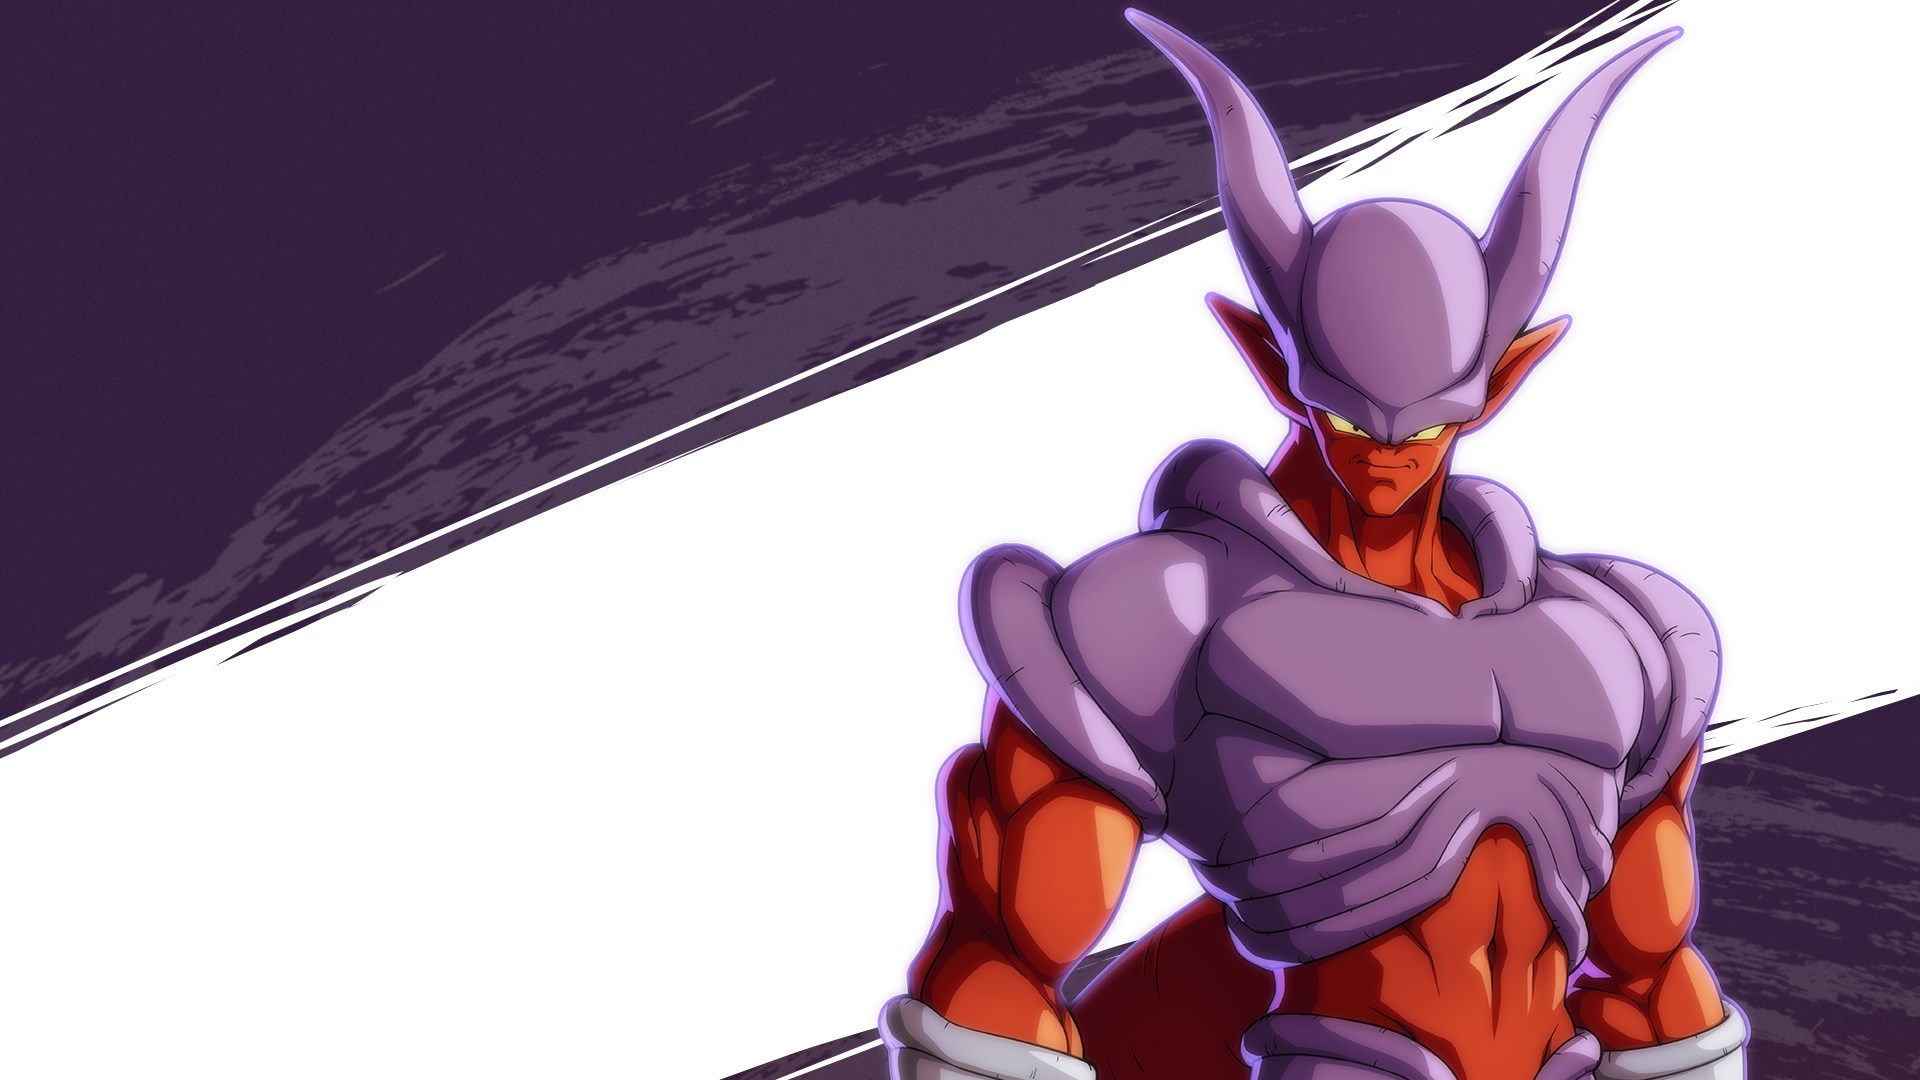 DRAGON BALL FIGHTERZ - Janemba